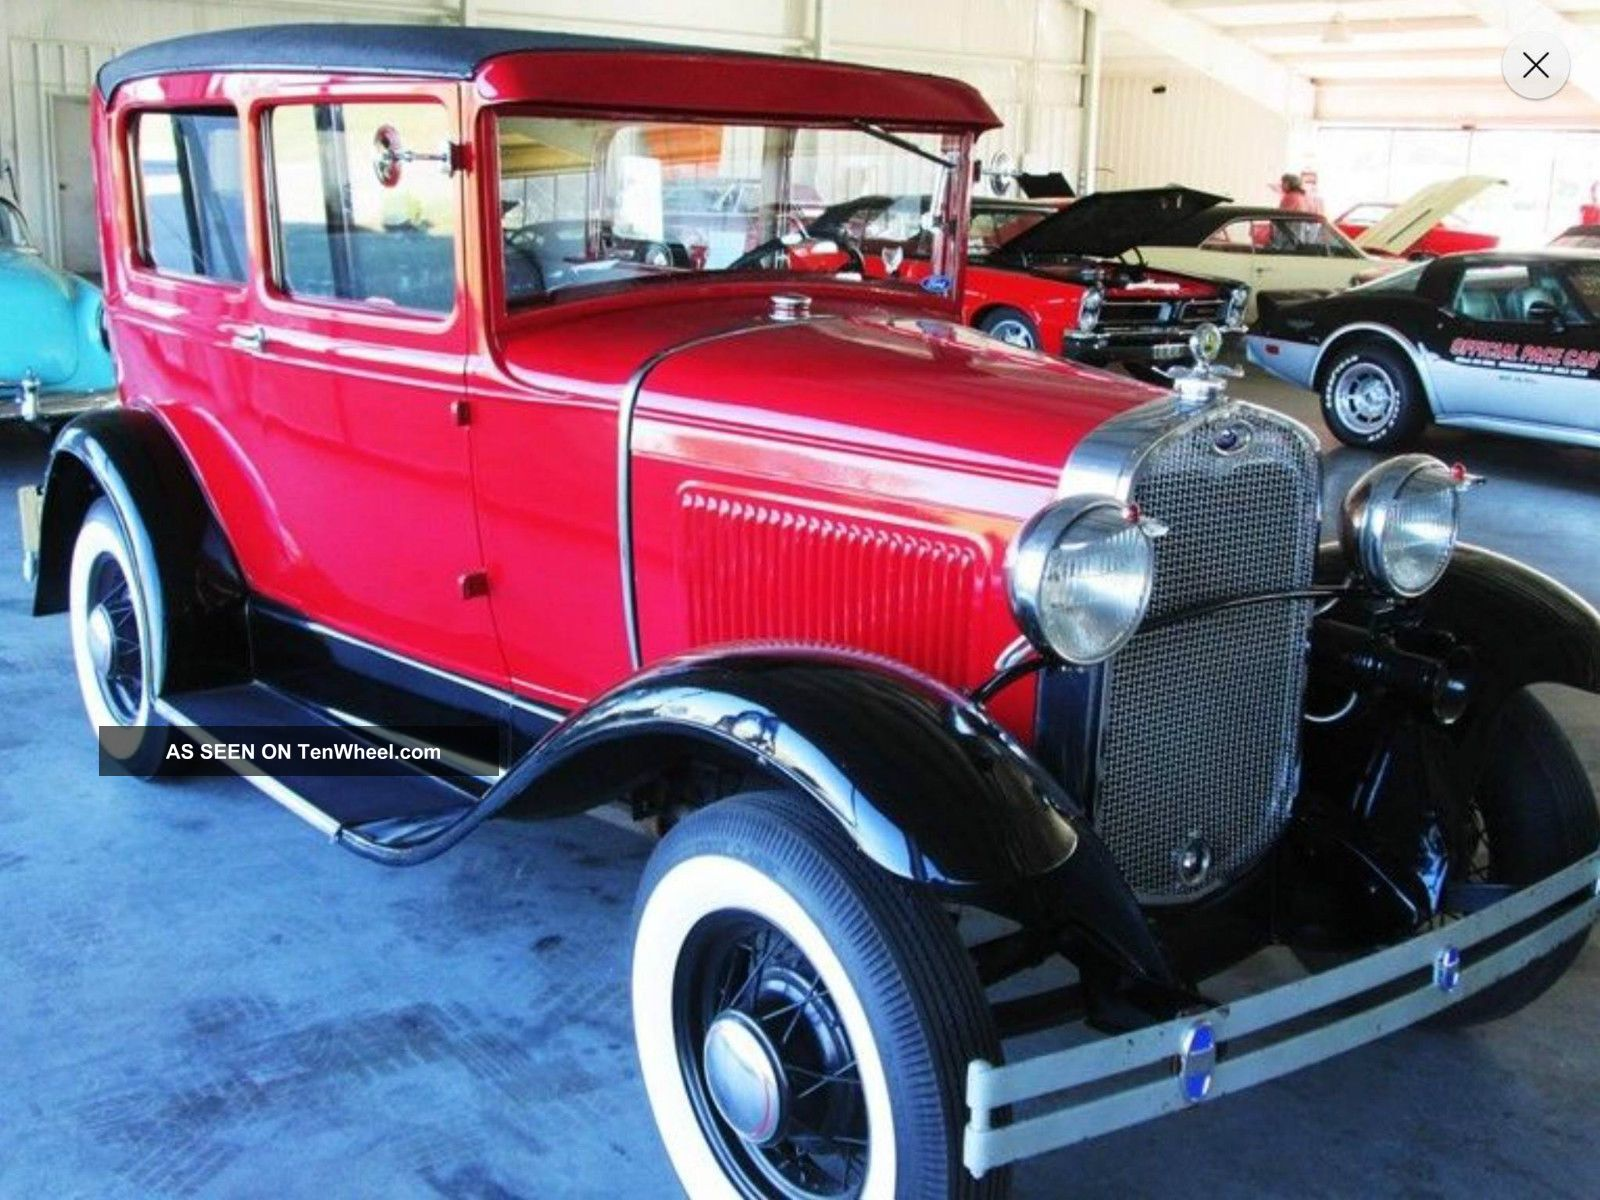 Red And Black Ford Model A 1930 With Tan Interior Model A photo